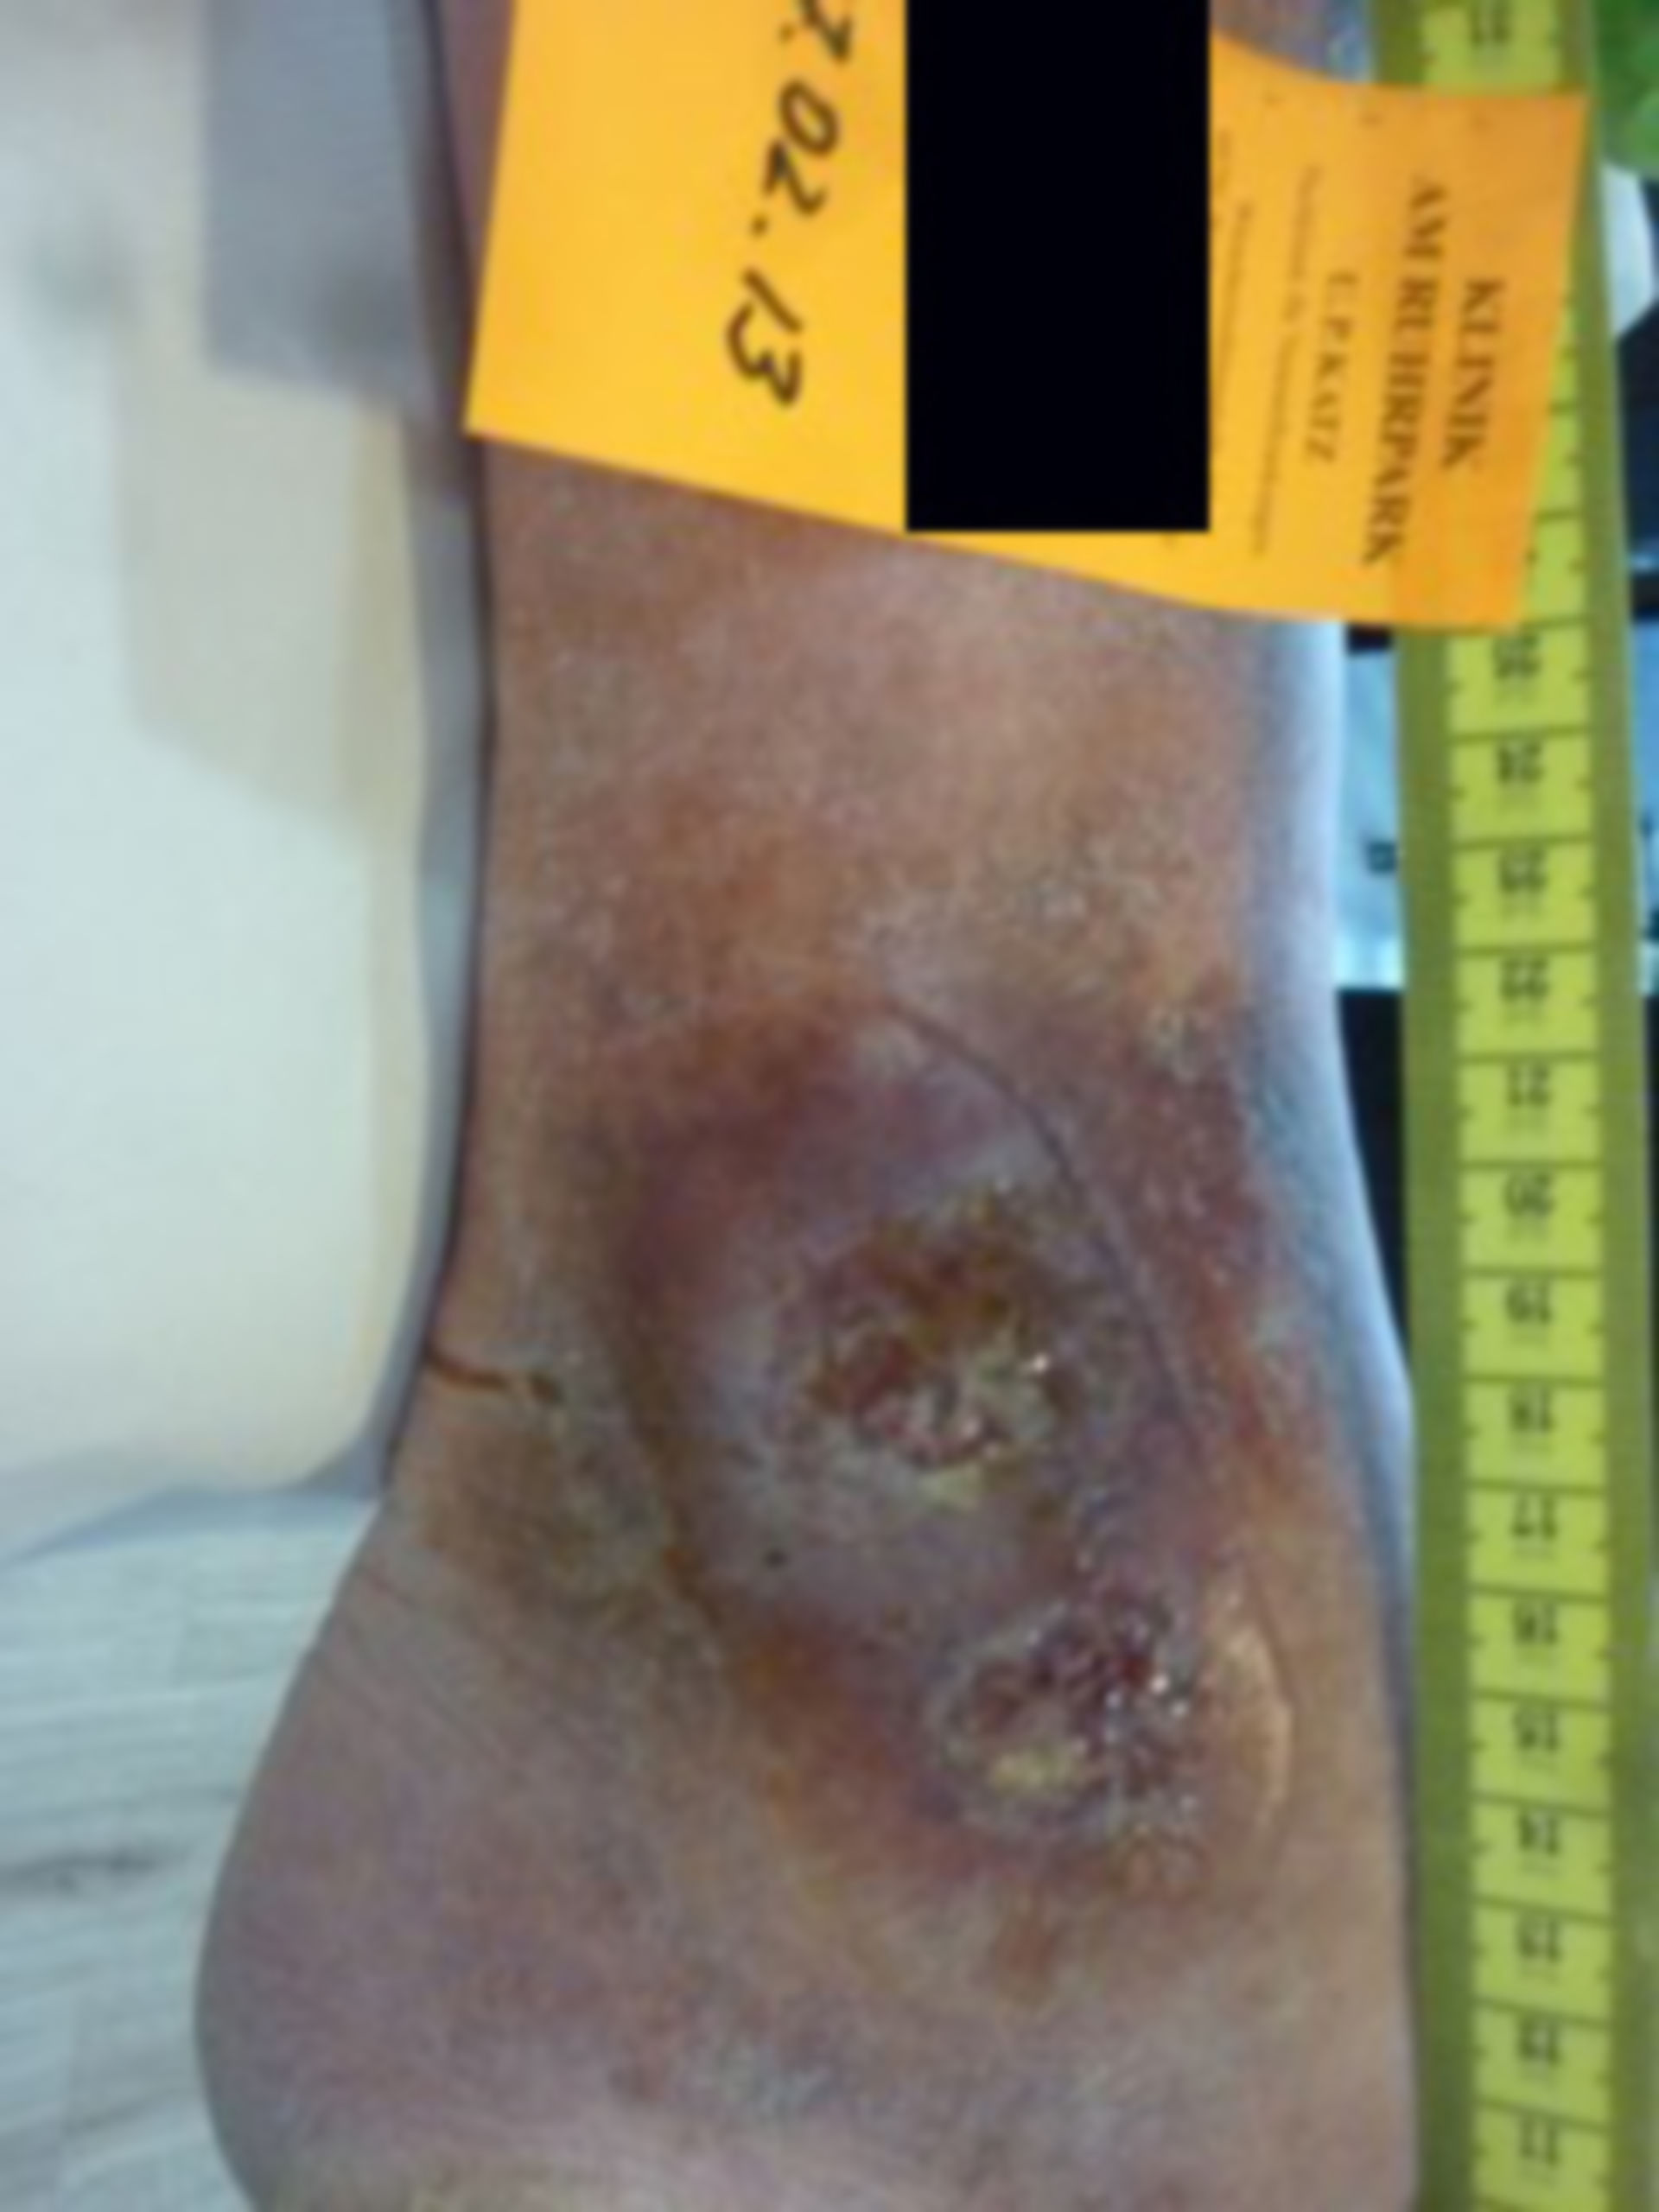 Erysipelas and ulcers (two years open)